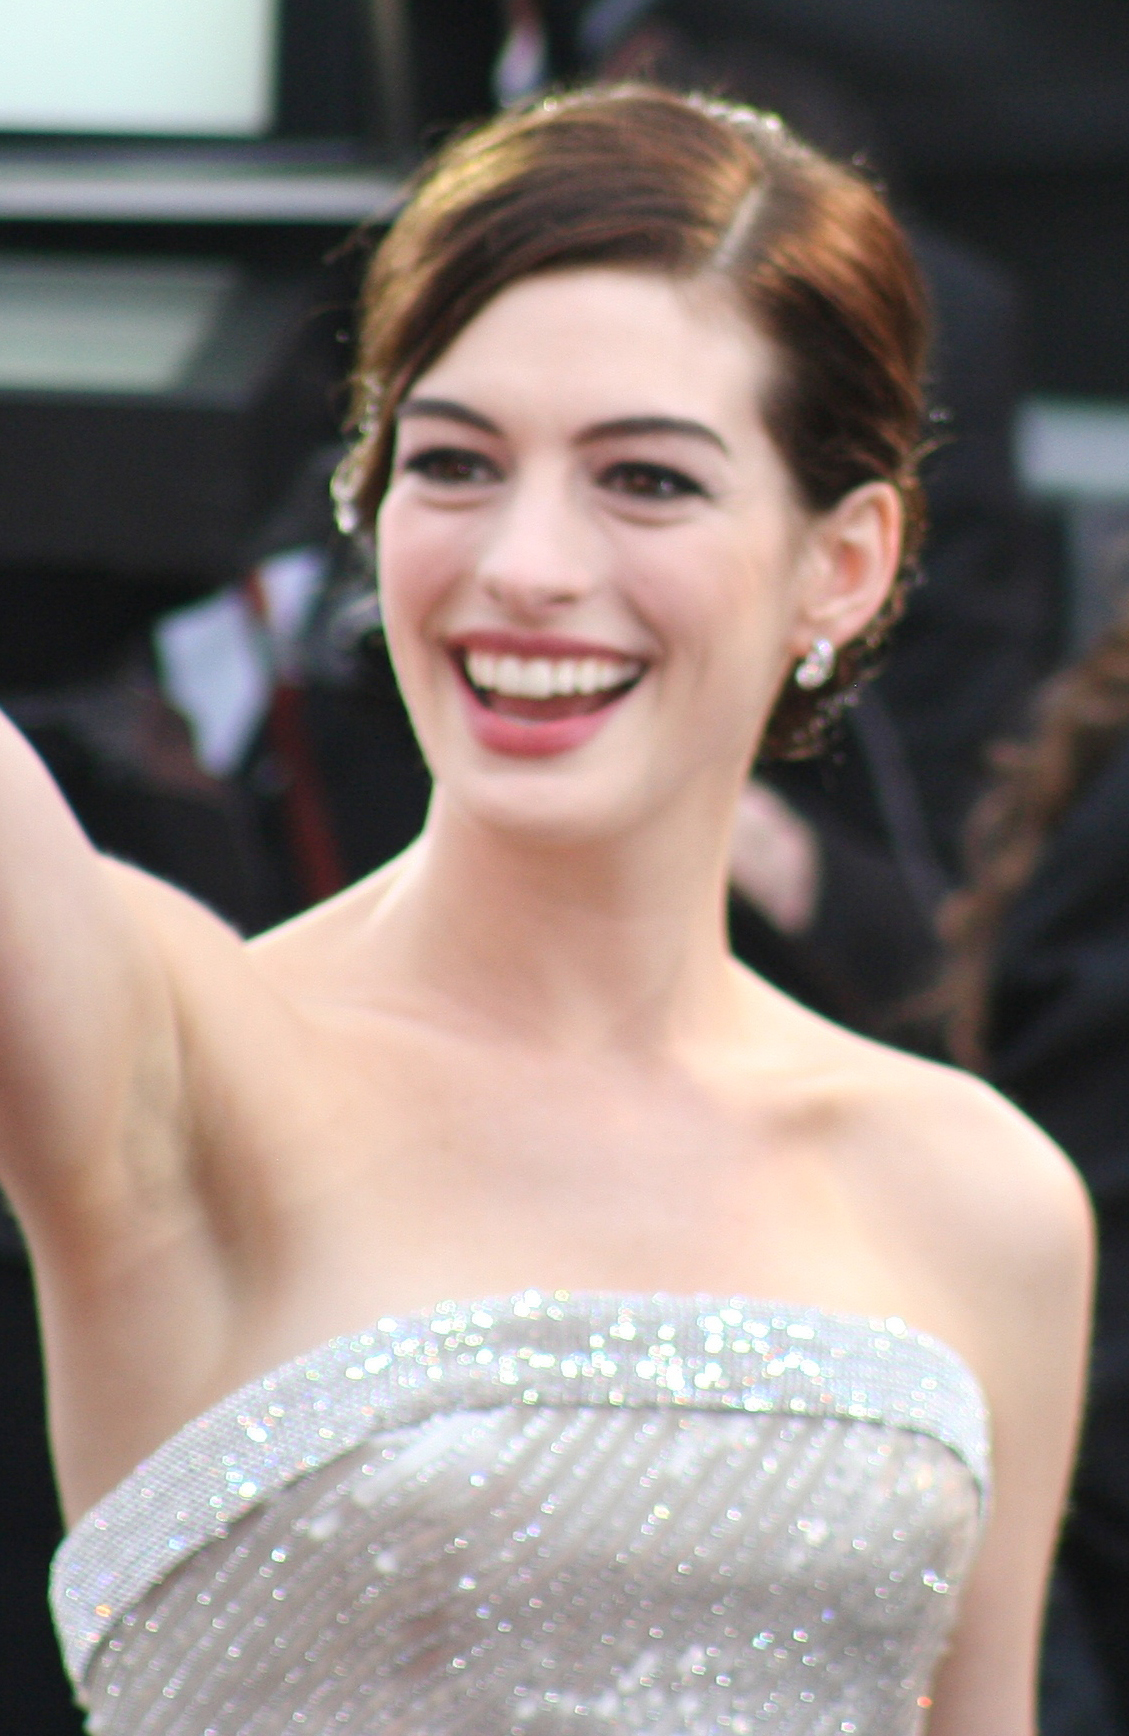 Hathaway on the red carpet in Anne Hathaway